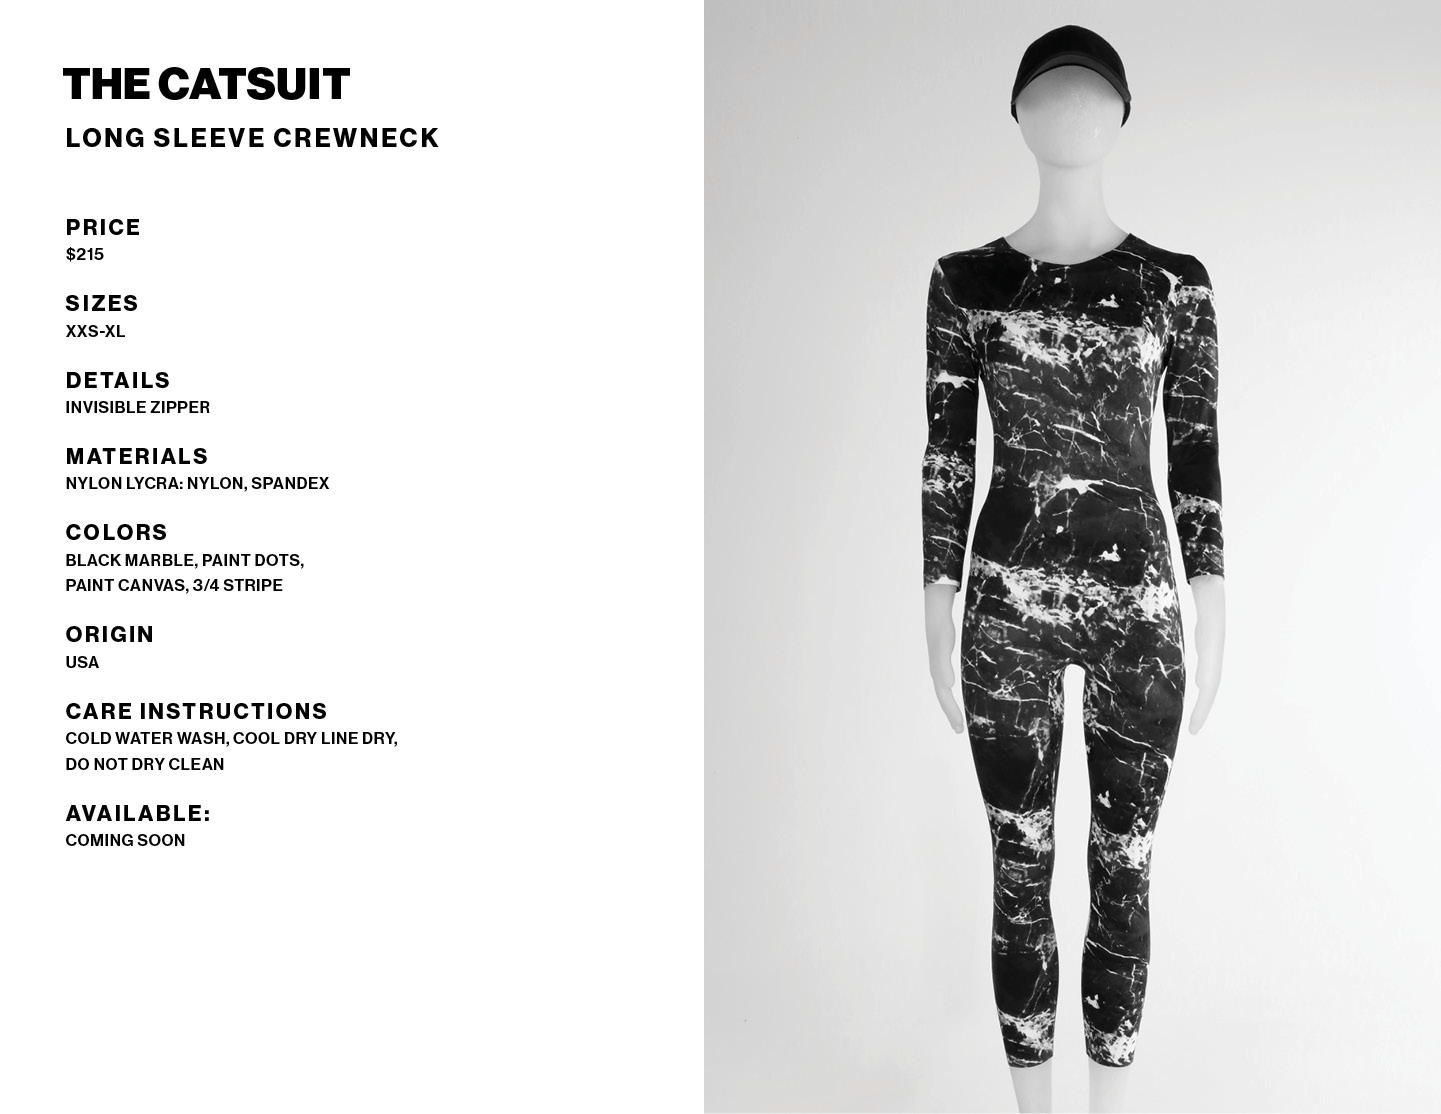 Catsuit product info